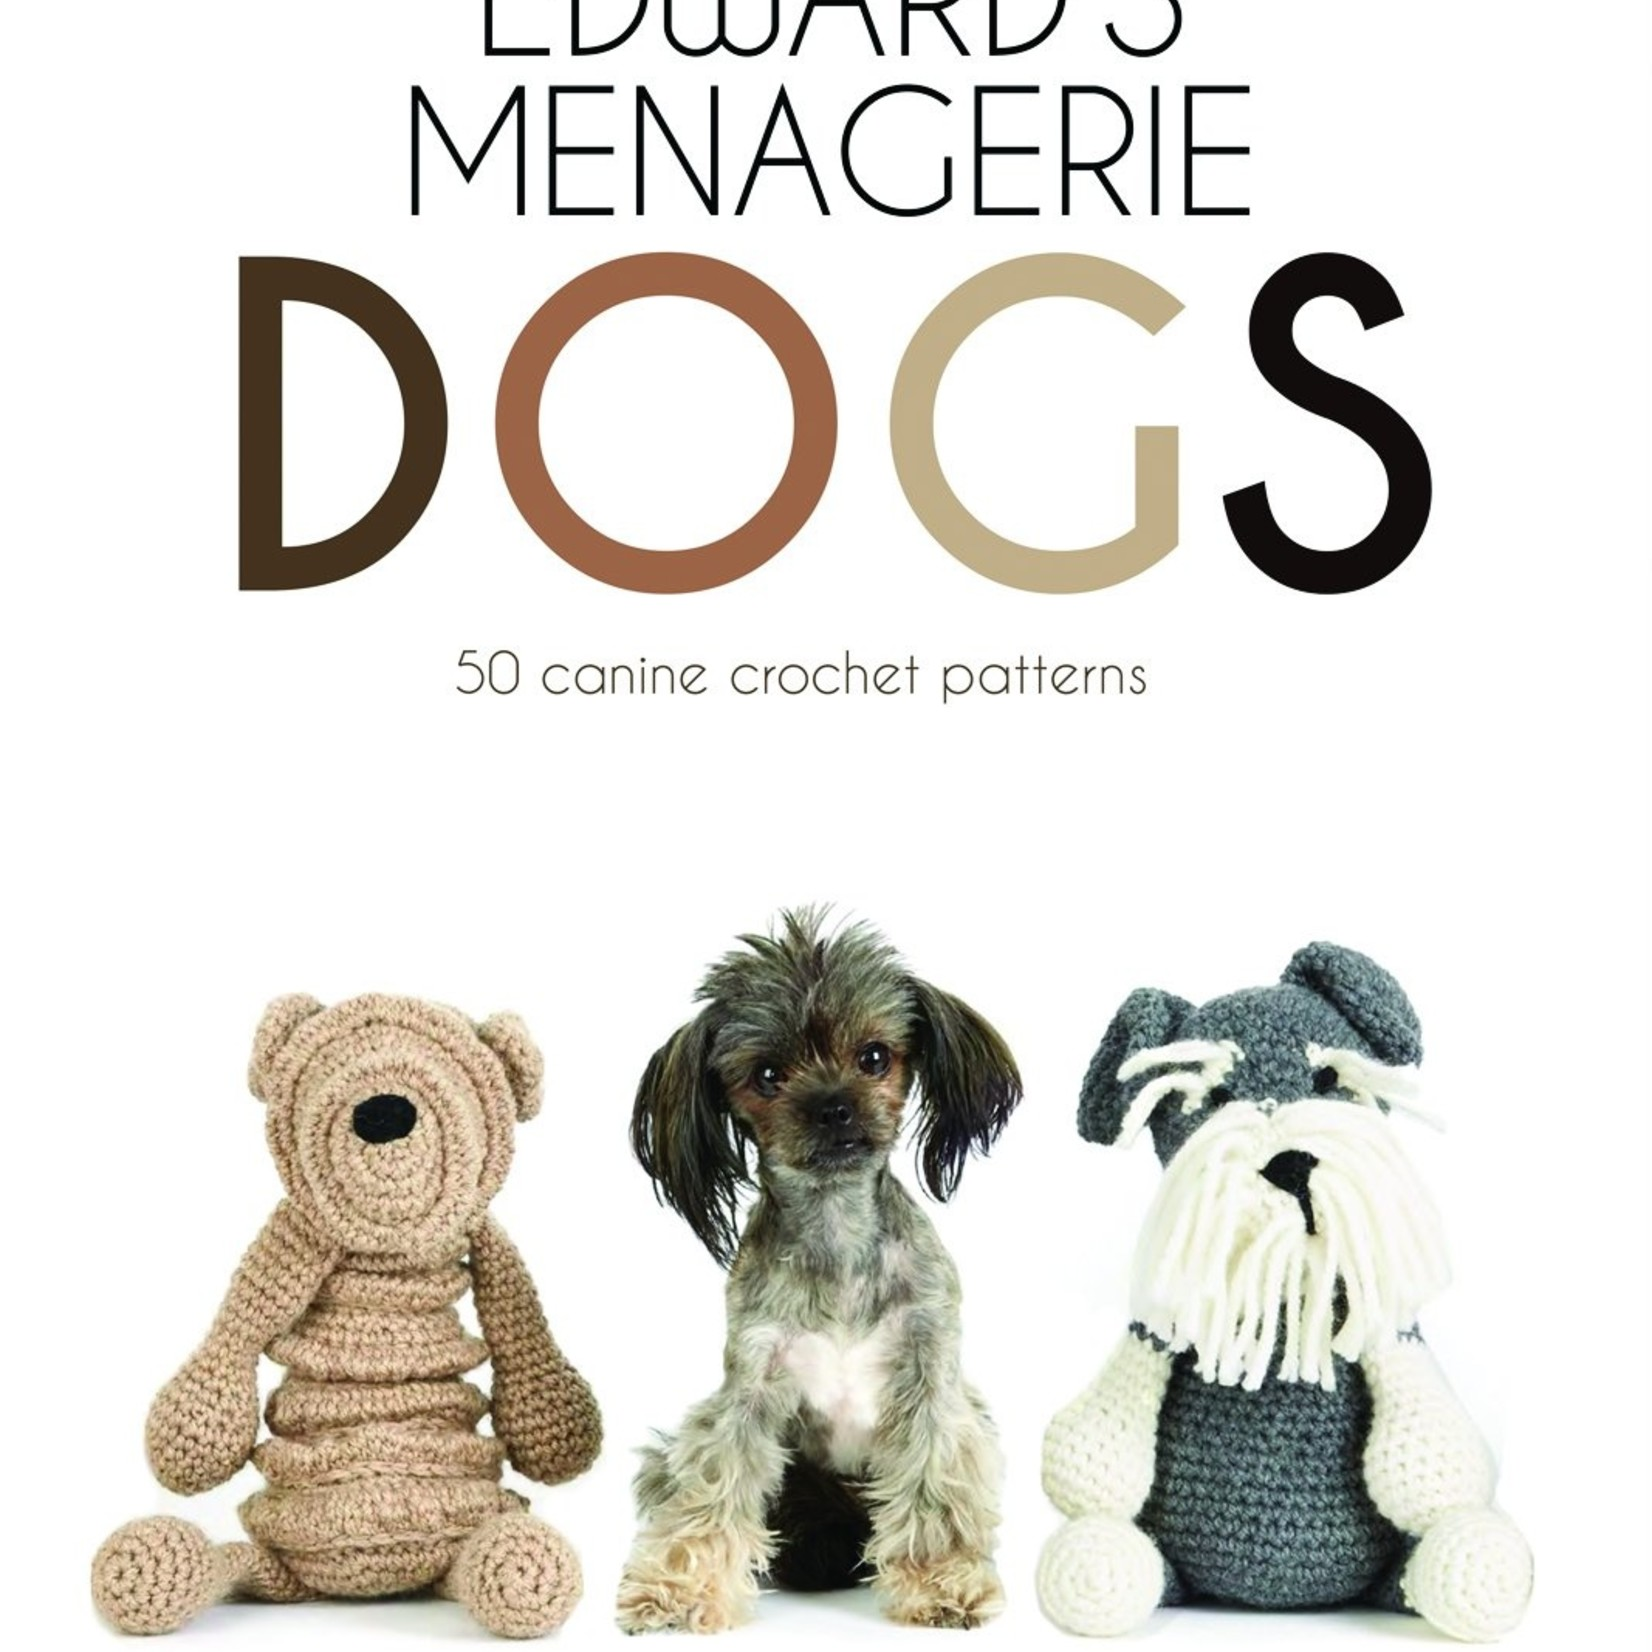 Edward's Menagerie : Dogs